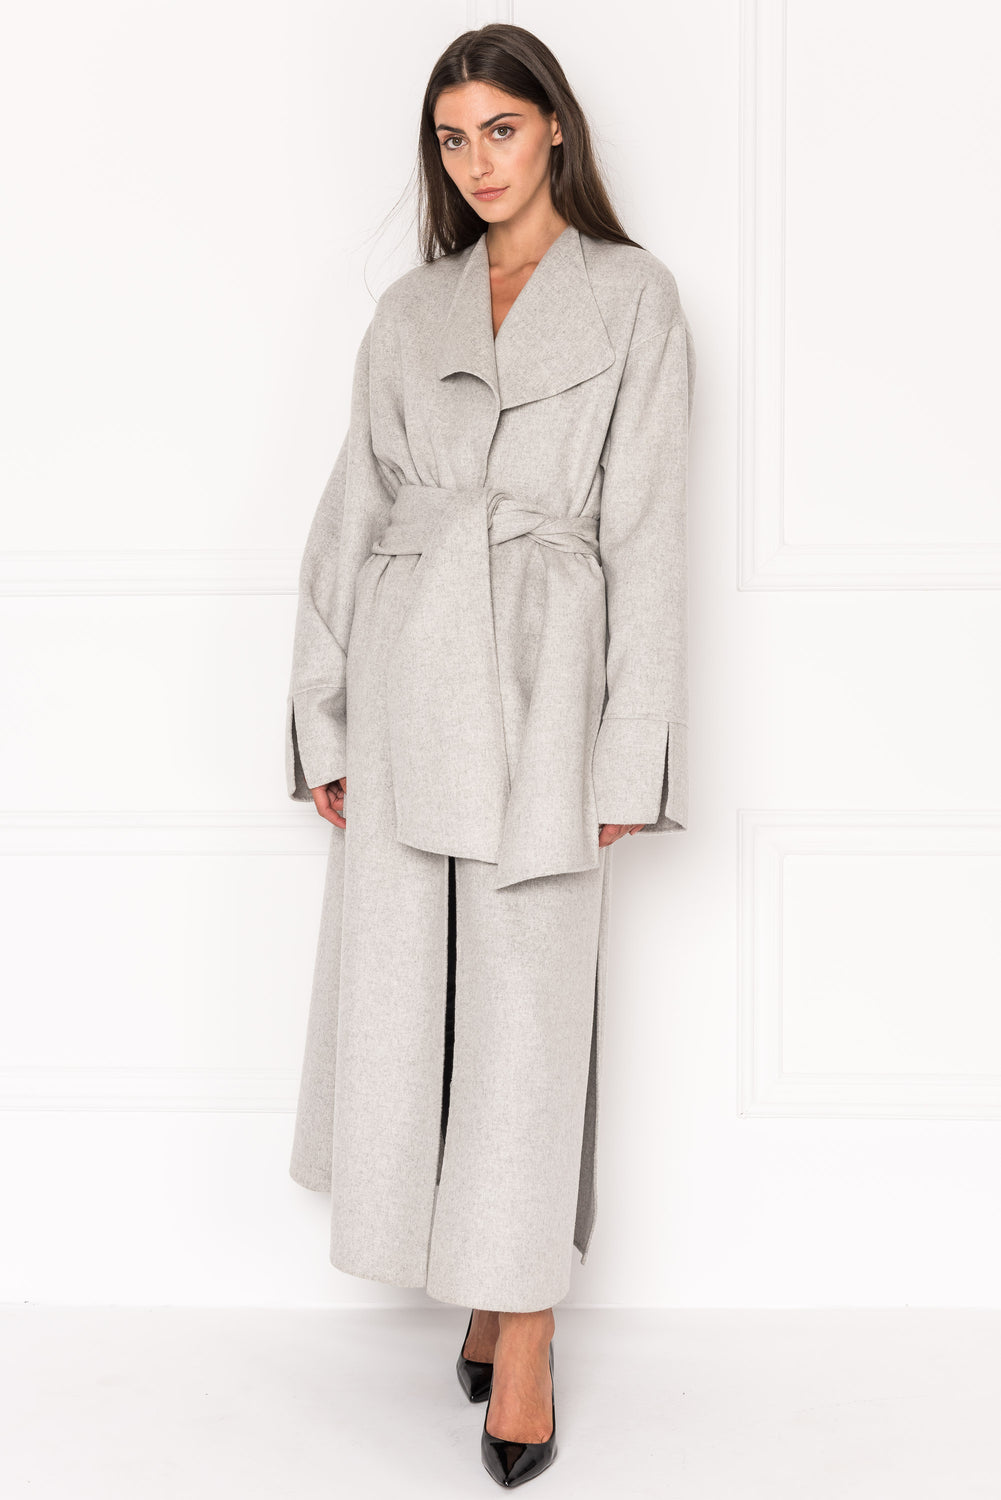 CORDELIA Oversized Wool Coat With Removable Scarf